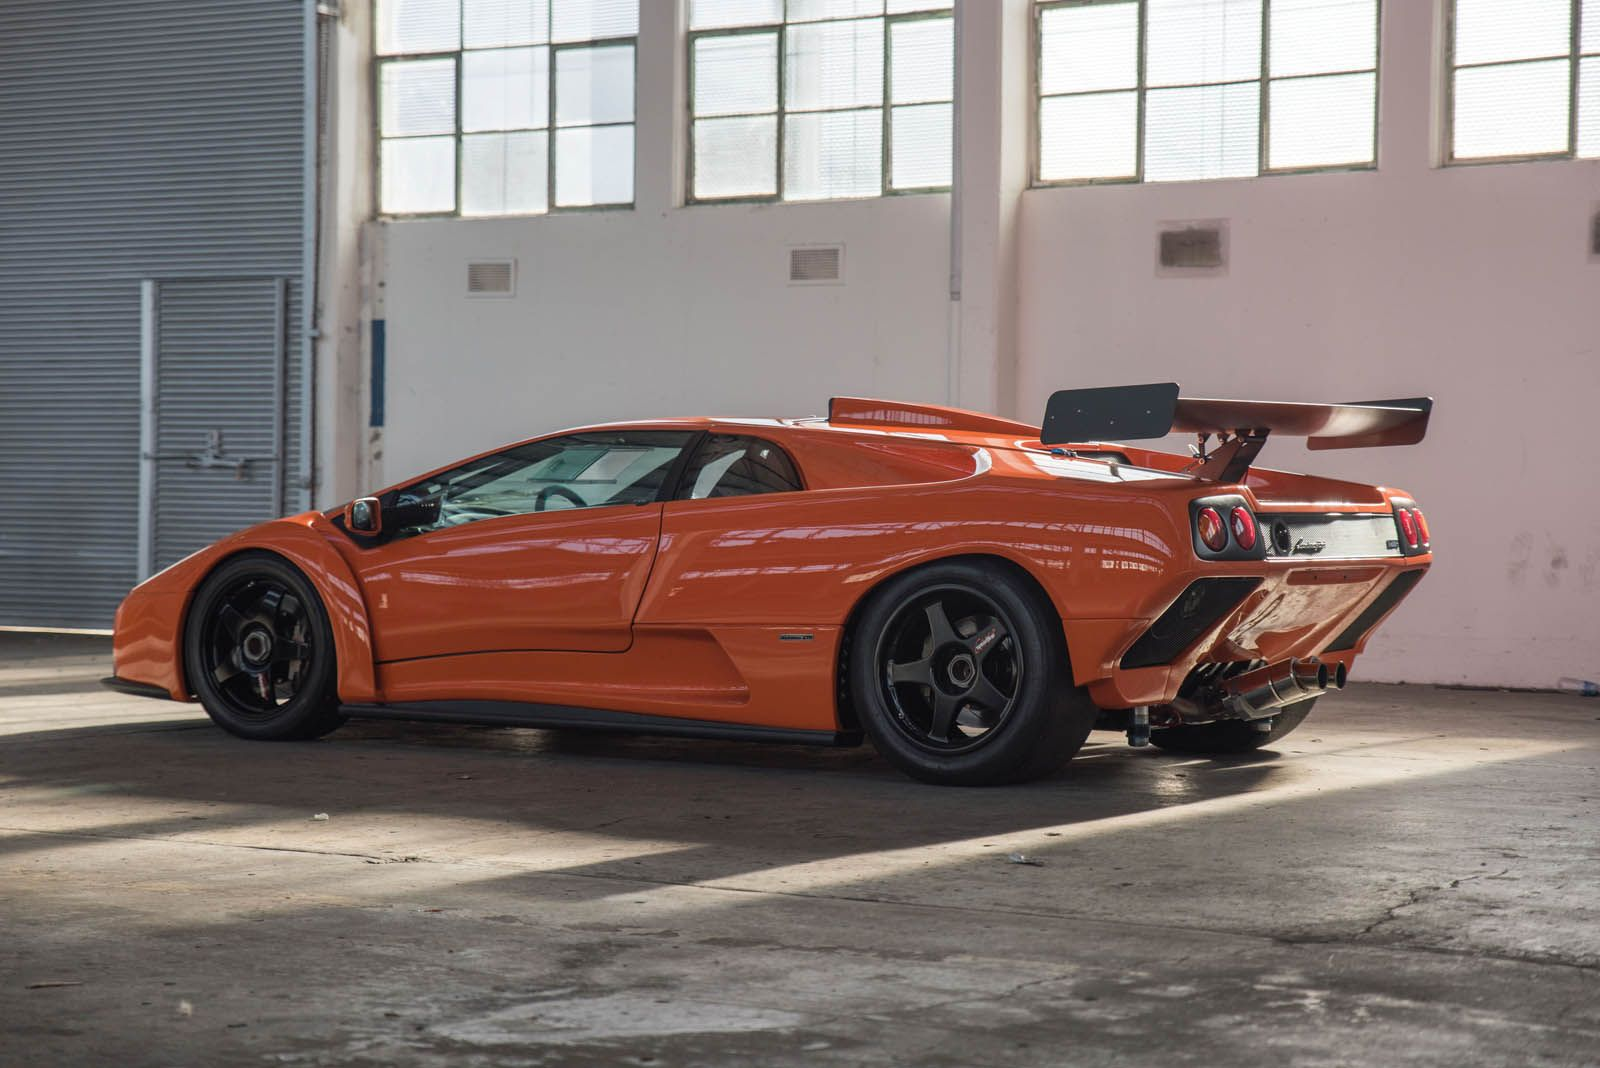 This Lamborghini Diablo Gtr Is Just Begging For A Day At The Track